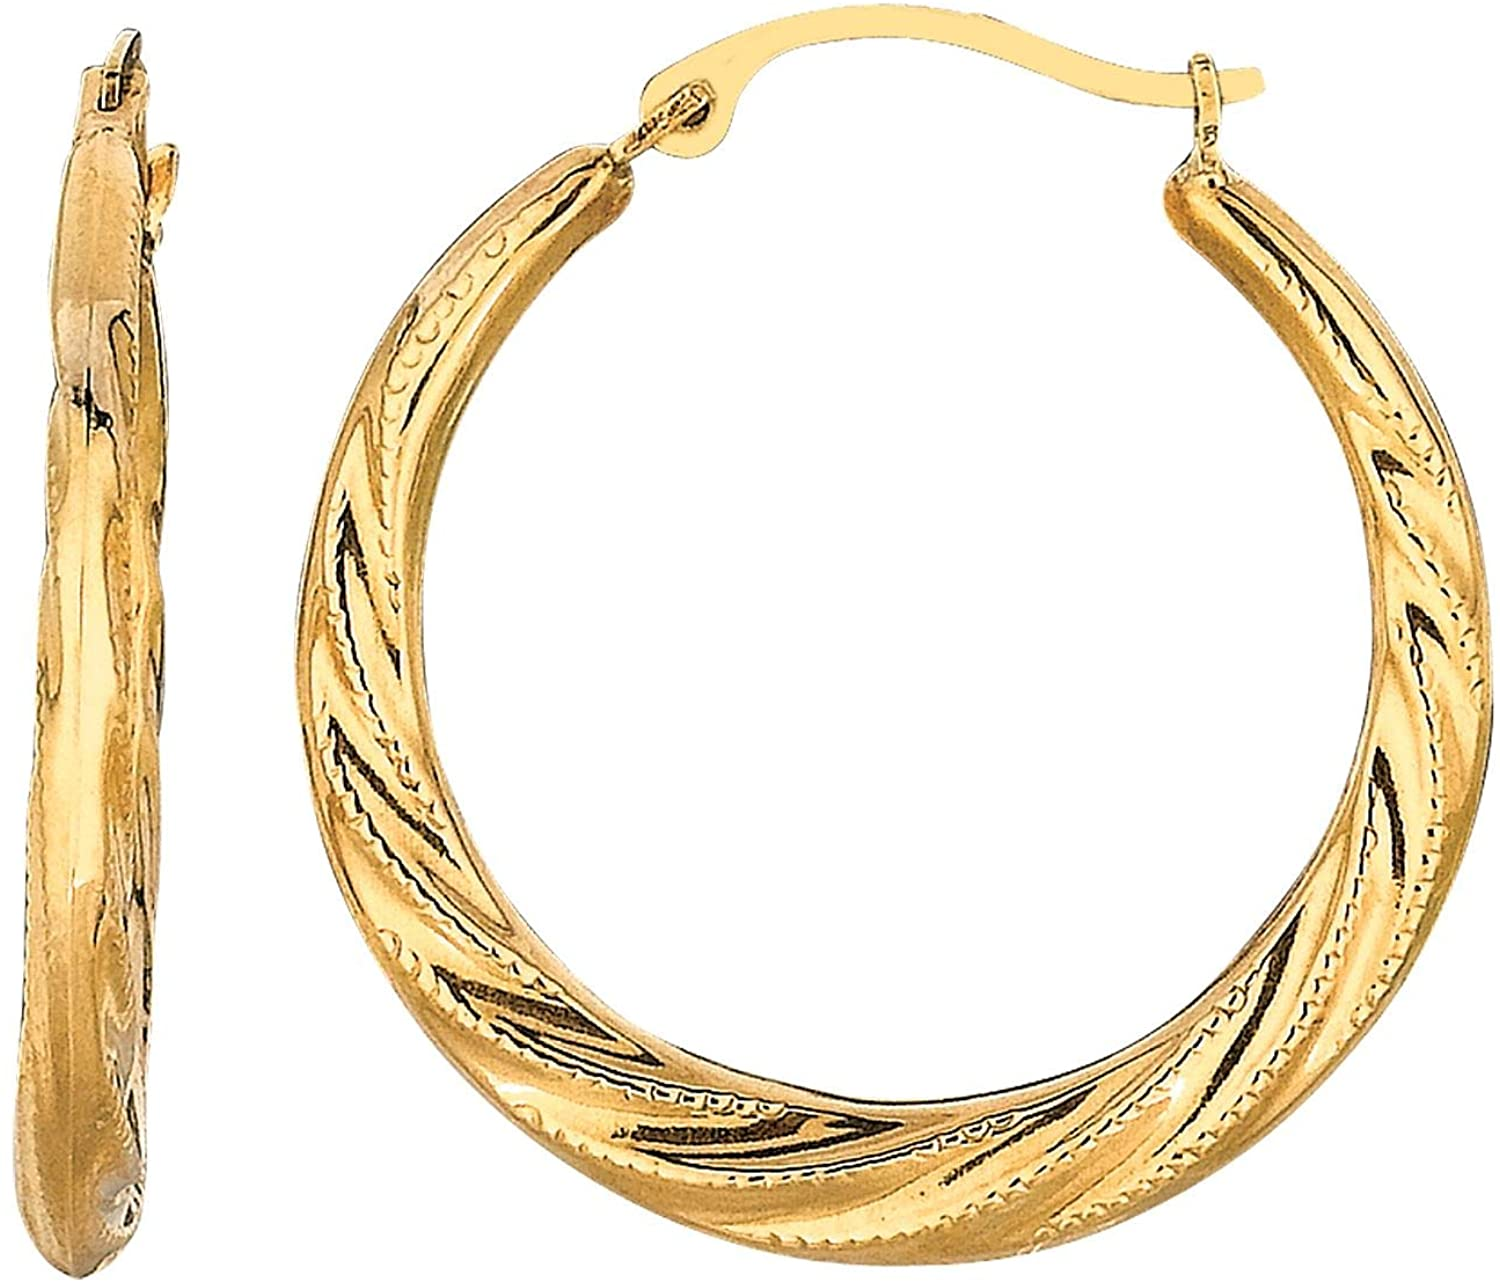 10K Yellow Gold Shiny Textured Fancy Twisted Hoop Earrings with Hinged by IcedTime